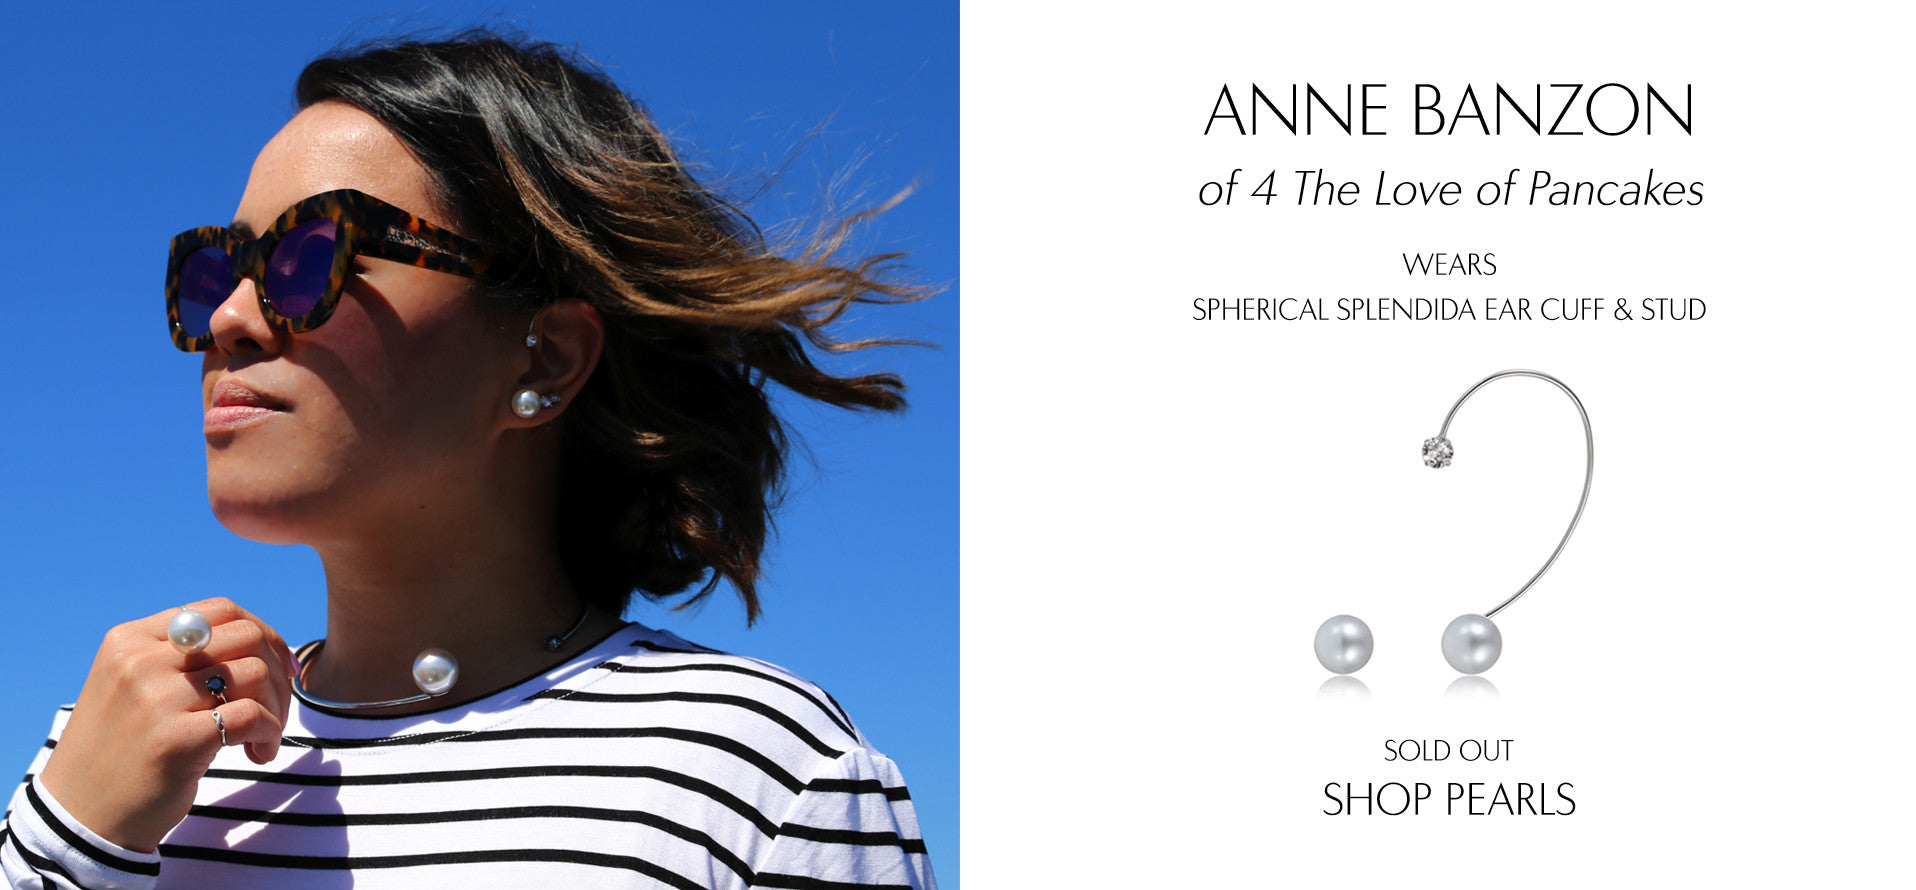 4TheLoveOfPancakes - Fashion Blog by Anne Banzon wears Sarina Suriano Spherical Splendida pearl earcuff and stud